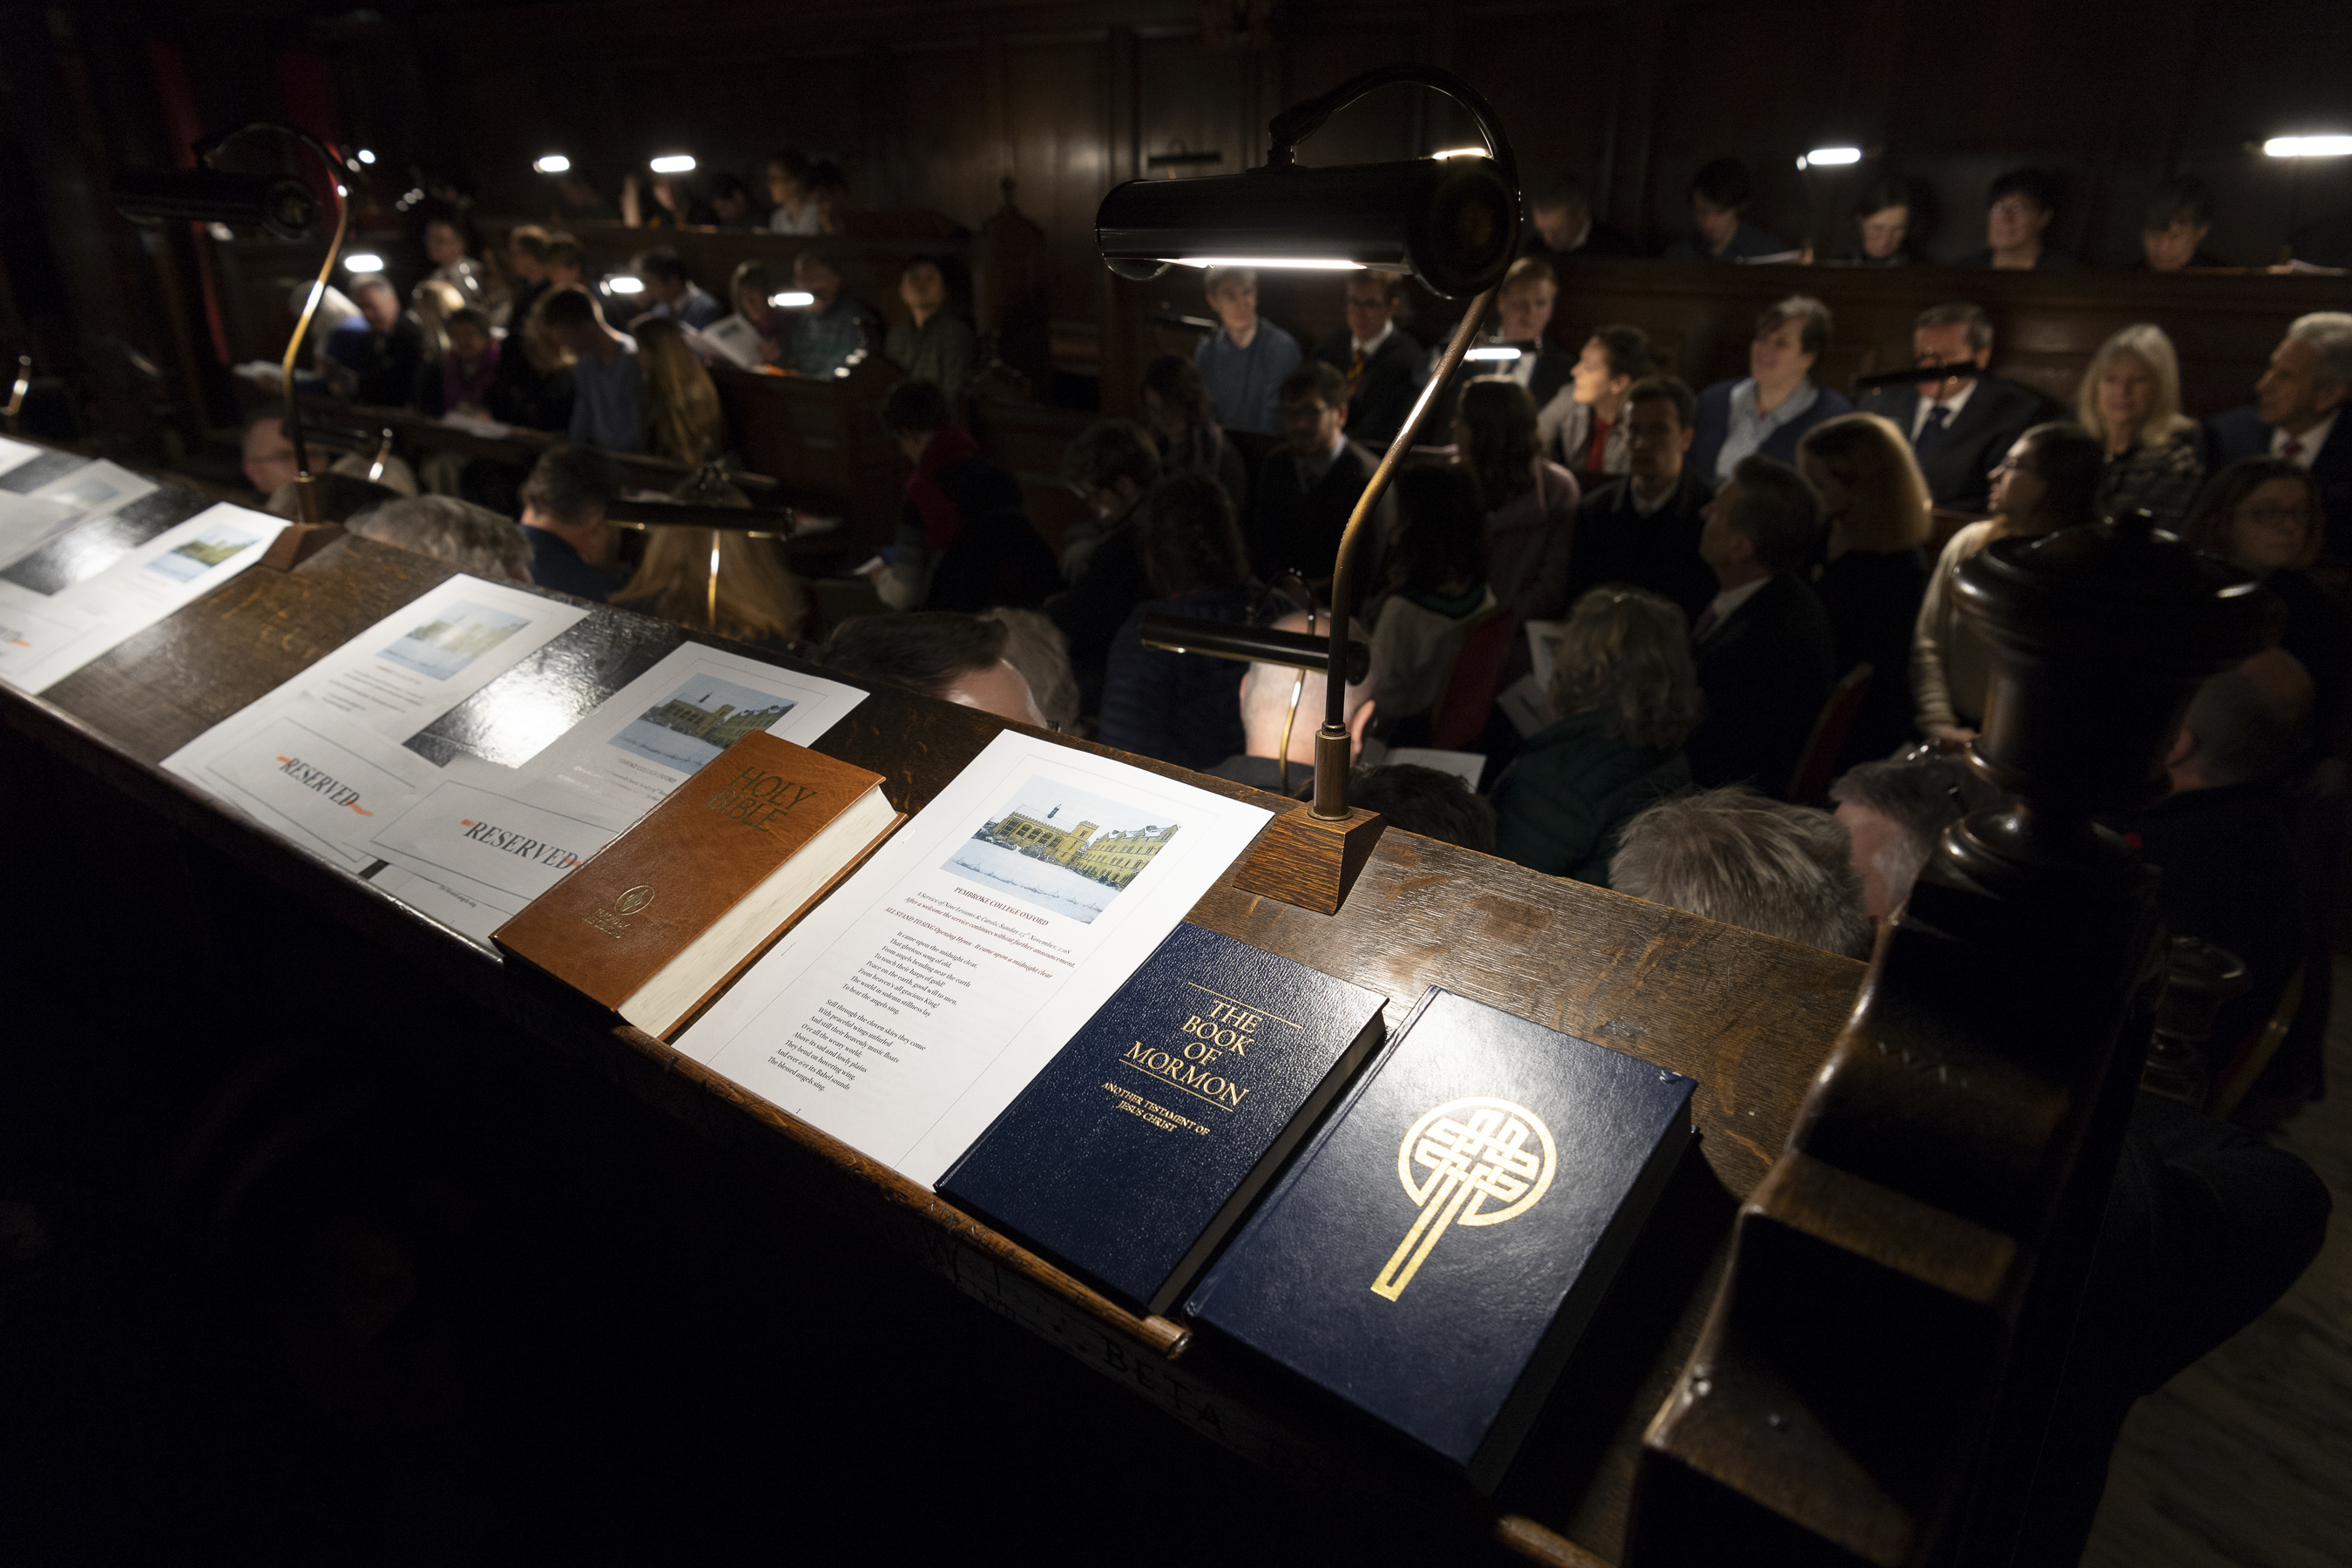 """A Bible, a Book of Mormon and a Church of England Lectionary of worship texts rest on a lectern on the top row of benches before start of the traditional Church of England """"Nine Lessons and Carols"""" service at the Pembroke College Chapel in Oxford, England, on Sunday, Nov. 25, 2018."""